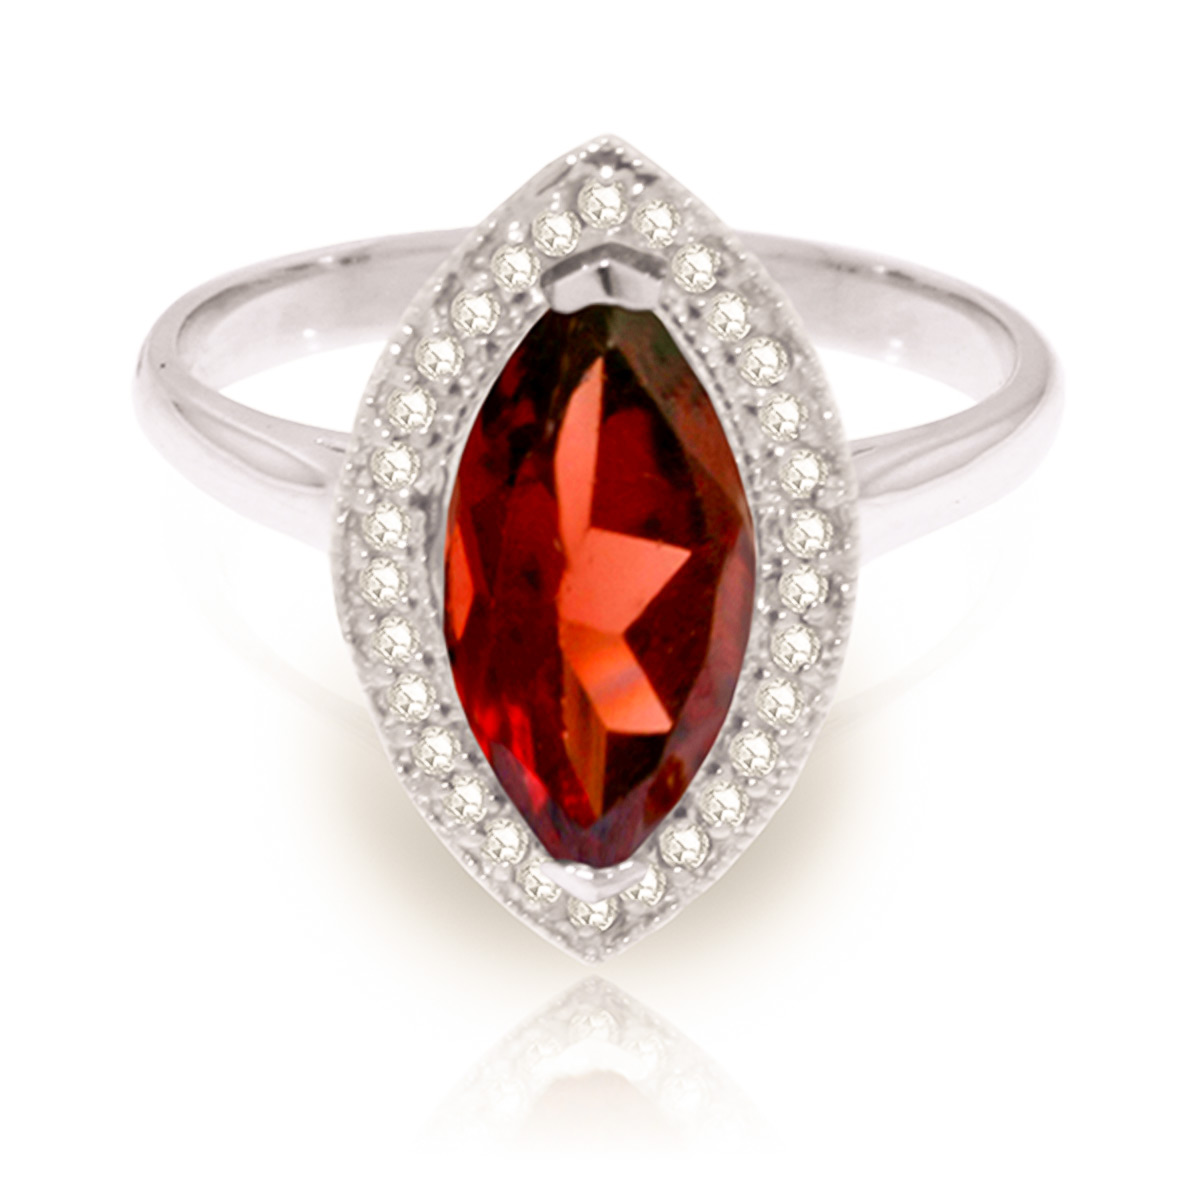 Garnet and Diamond Halo Ring 2.0ct in 9ct White Gold